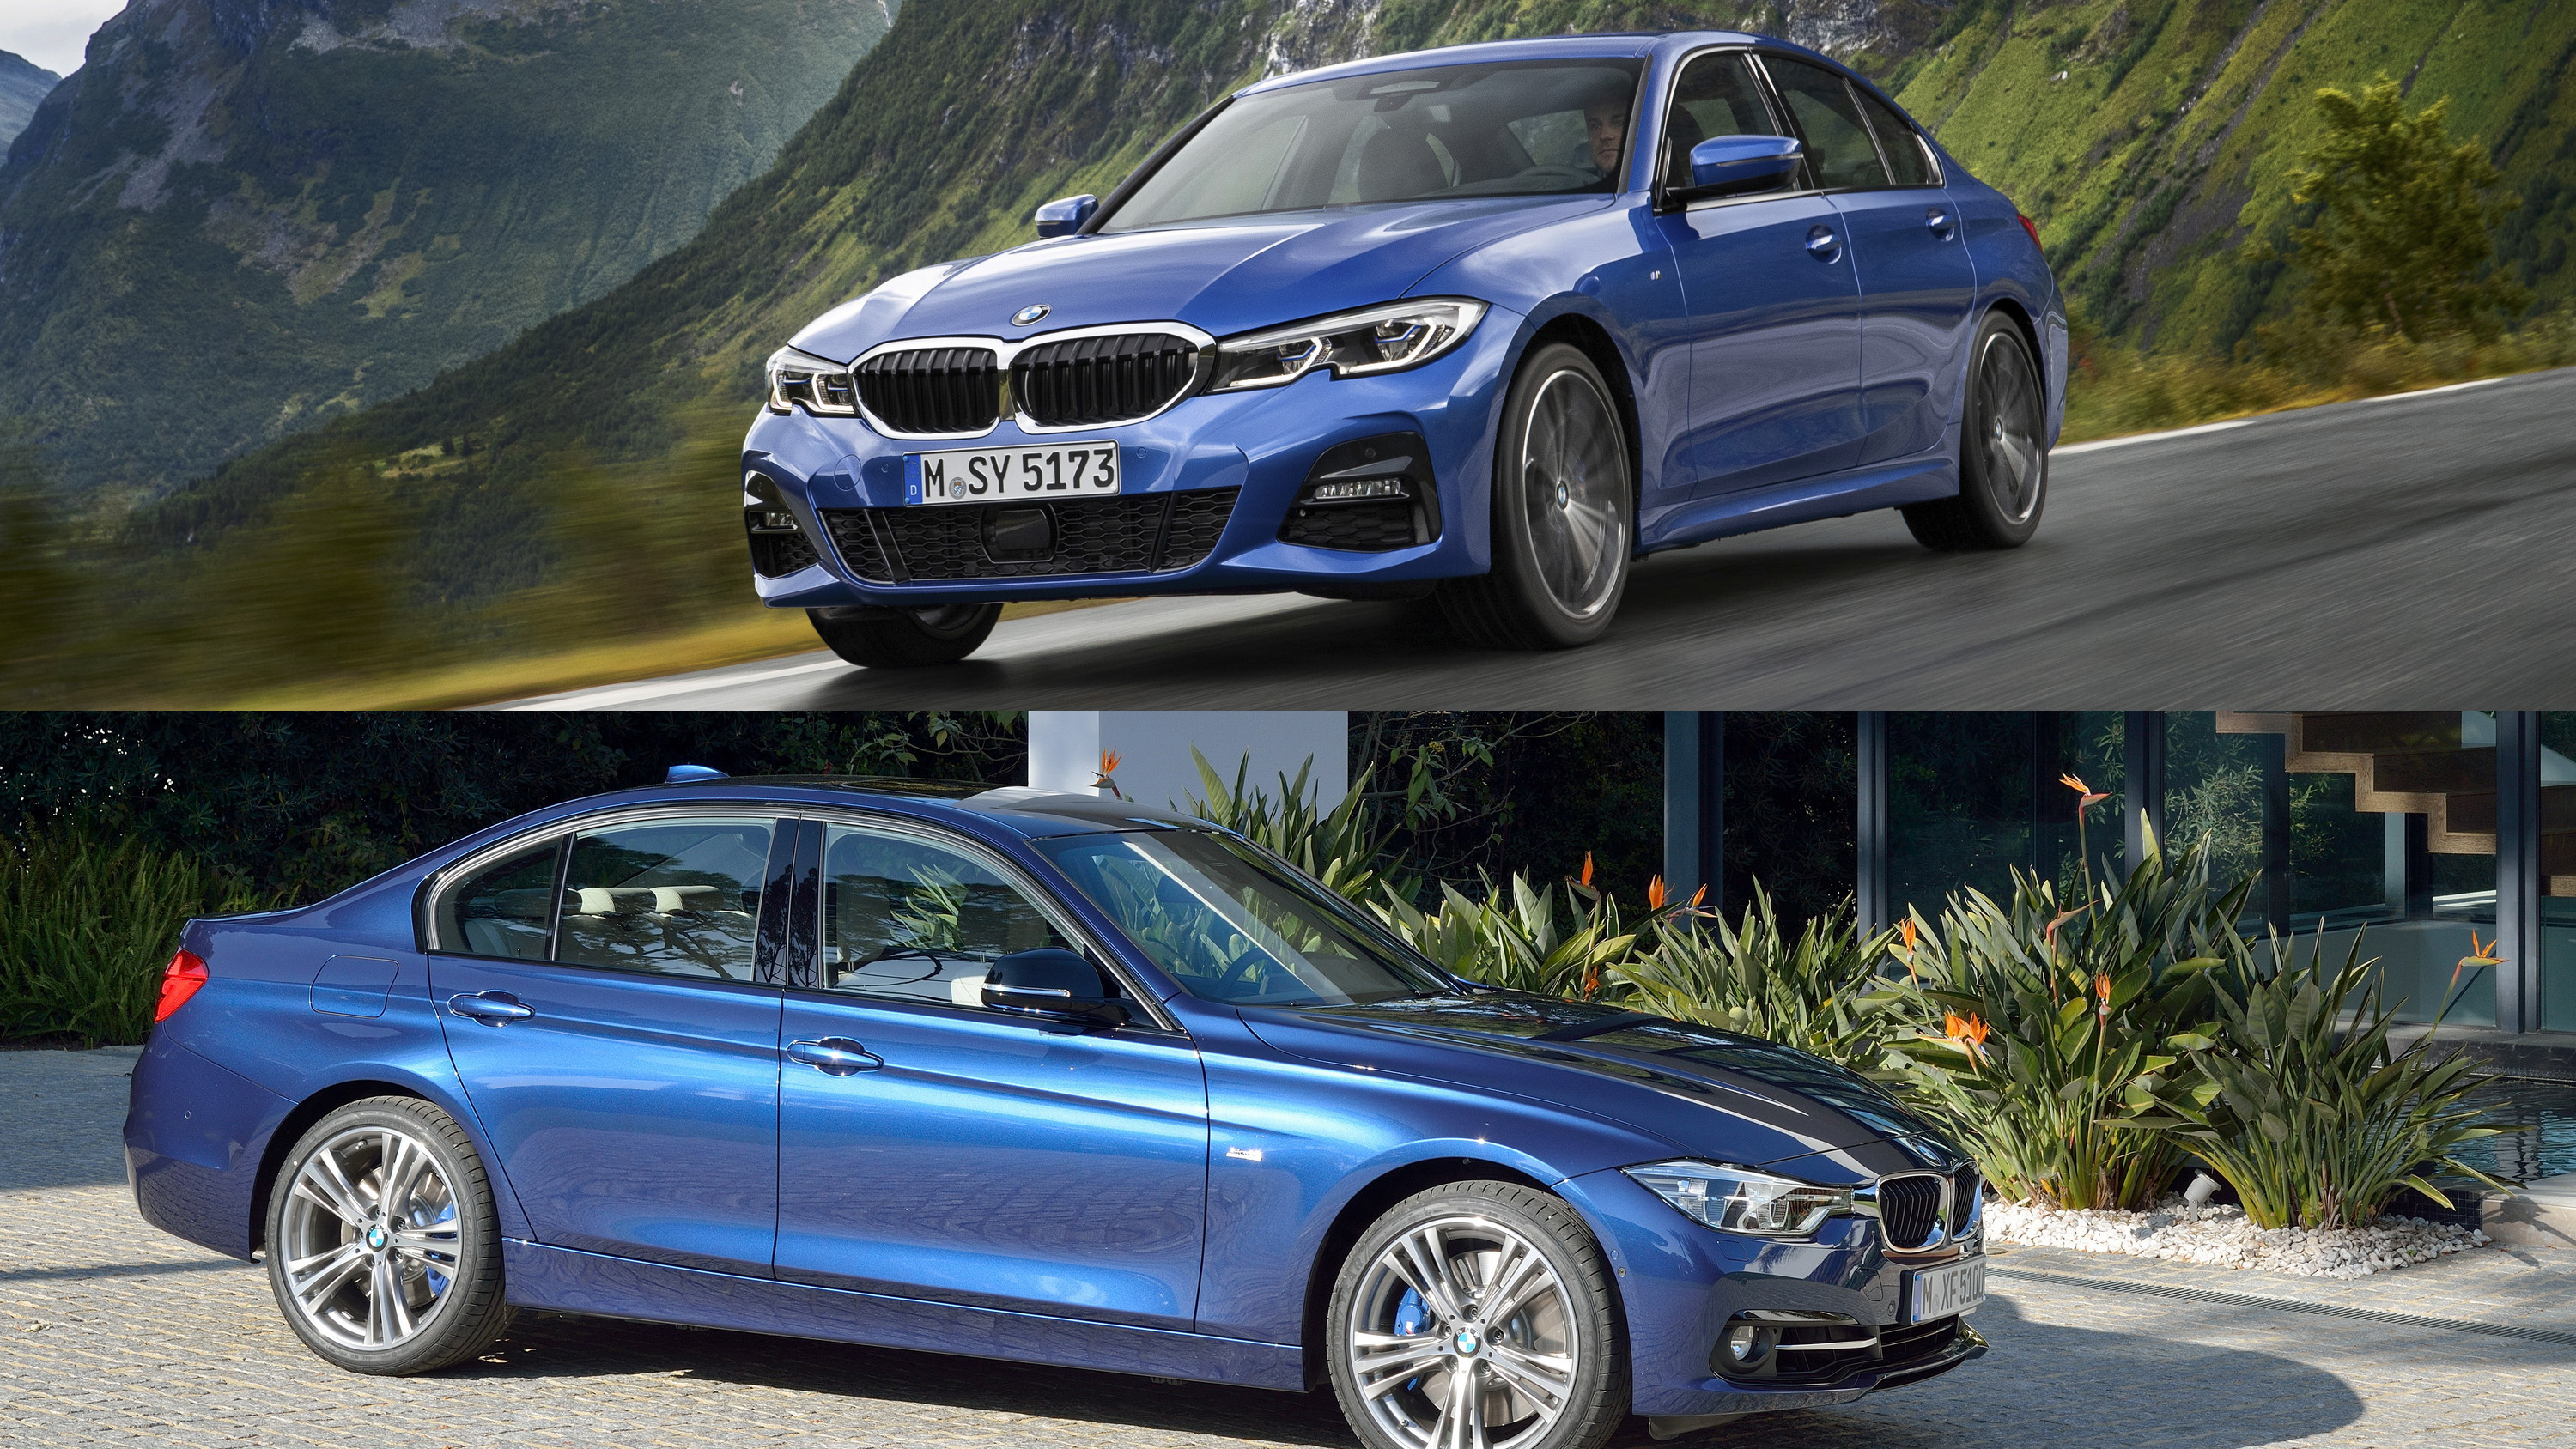 2018 BMW 3 Series >> 2018 Bmw 3 Series Vs 2019 Bmw 3 Series Top Speed